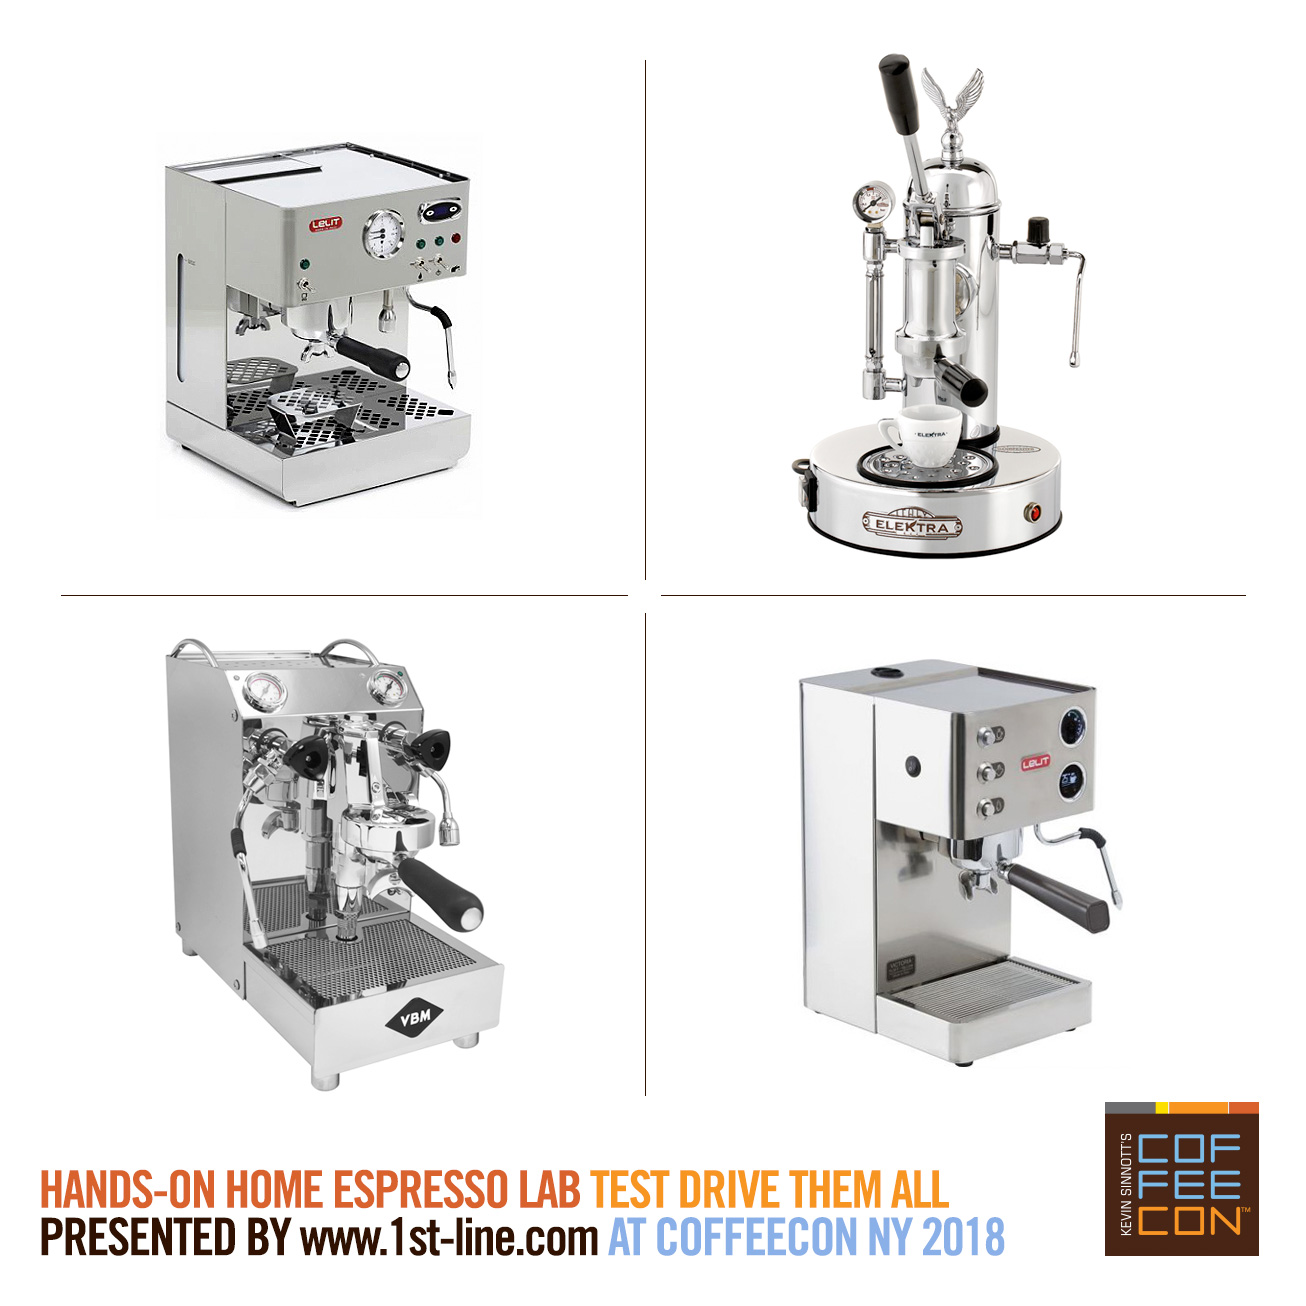 Hands-On Home Espresso Lab at CoffeeConNY